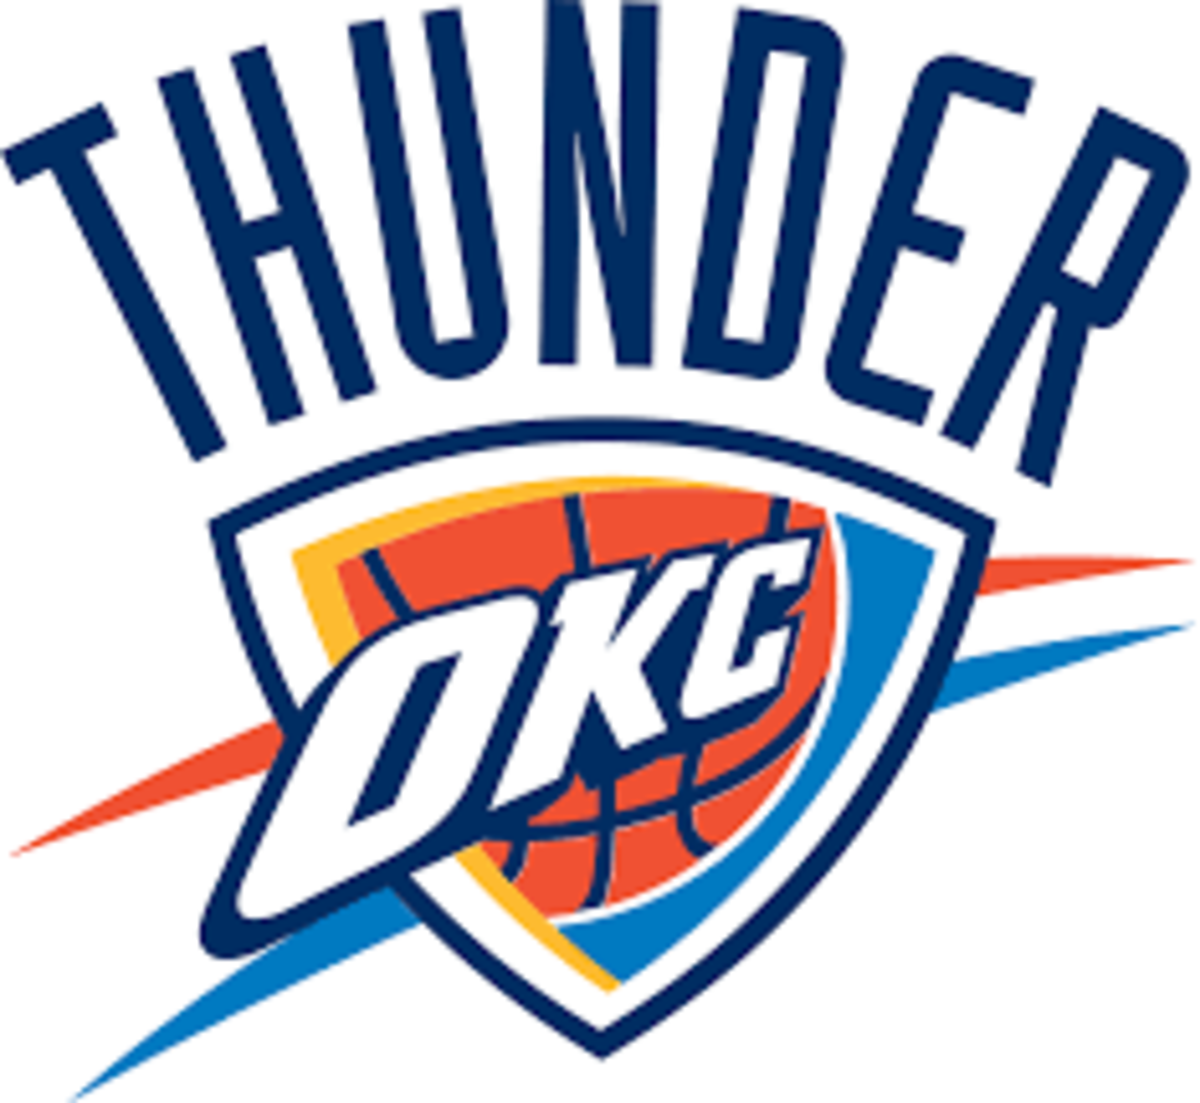 The Thunder finished 22-50 last season with the 14th best record in the West.